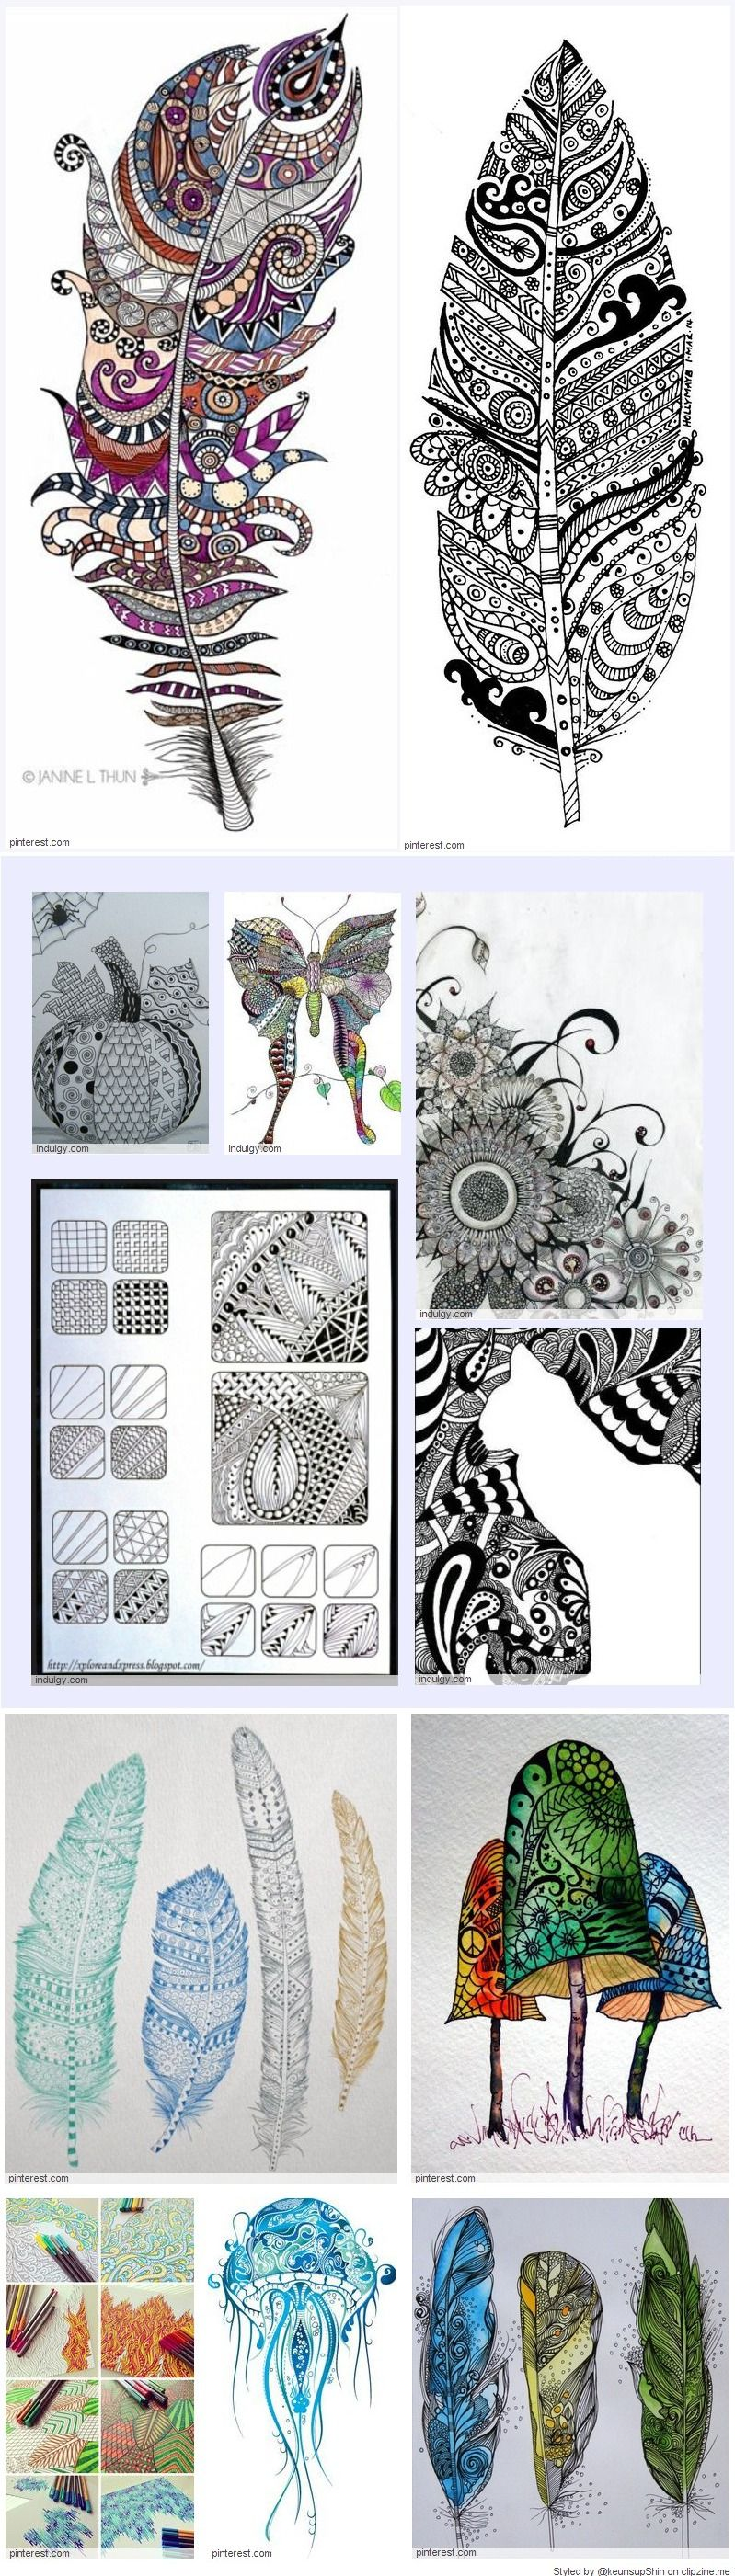 Zentangle Patterns Art Comes In All Shapes And Forms Be Careful To Not Fit Art In Just One Catorgary Zentangle Patterns Zentangle Drawings Doodle Art